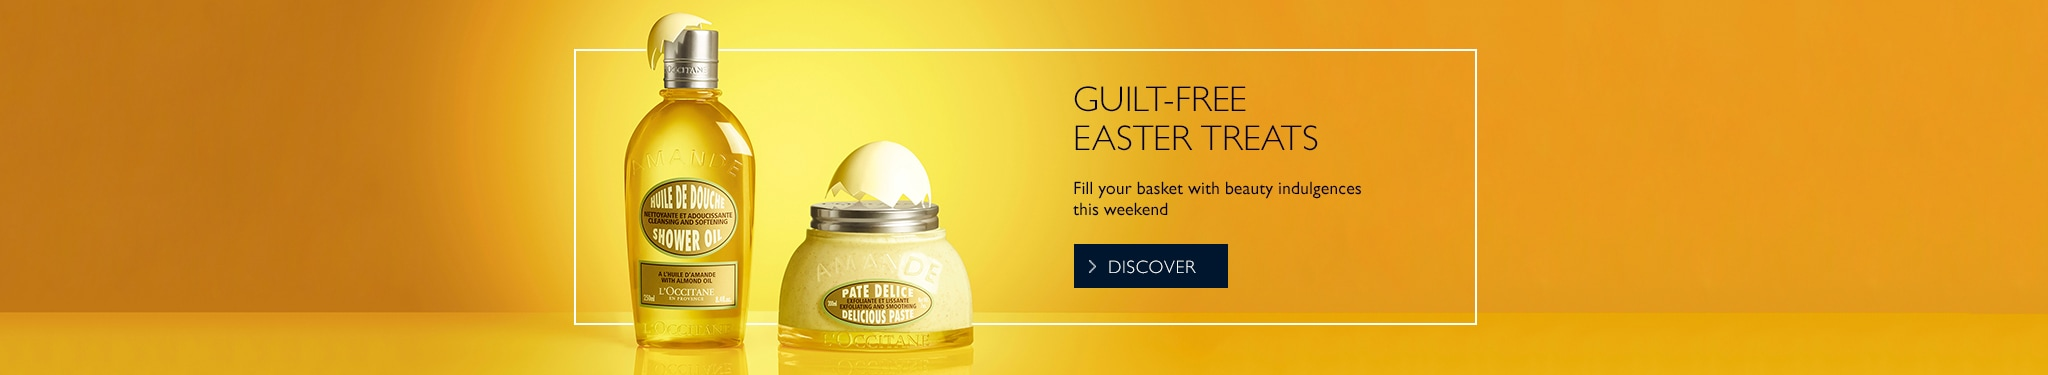 GUILT-FREE EASTER TREATS